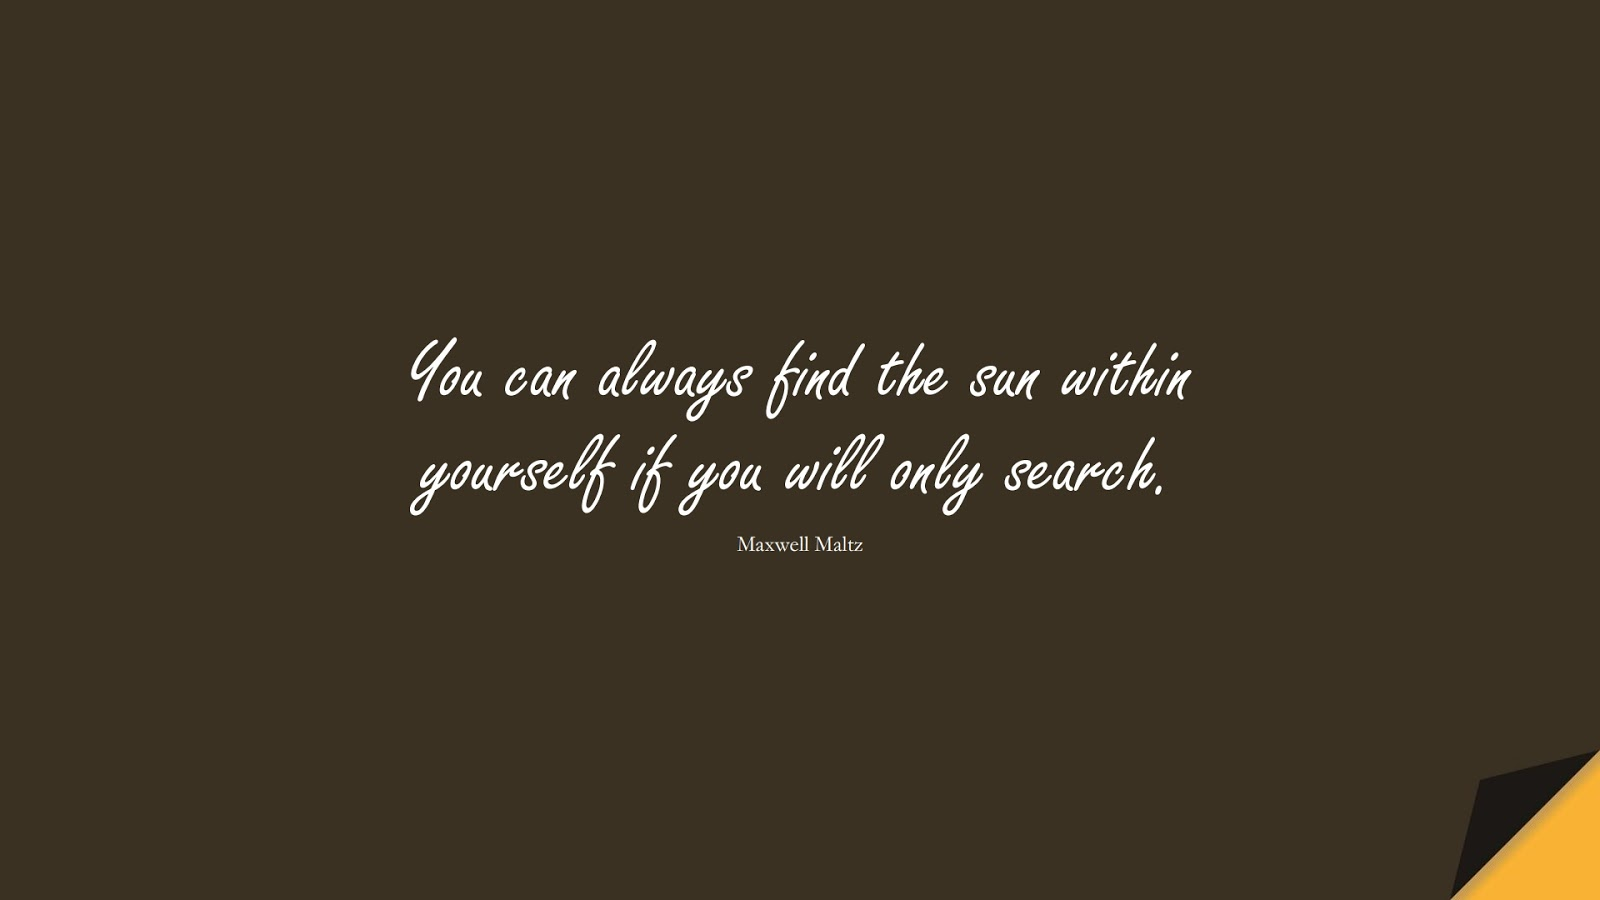 You can always find the sun within yourself if you will only search. (Maxwell Maltz);  #InspirationalQuotes